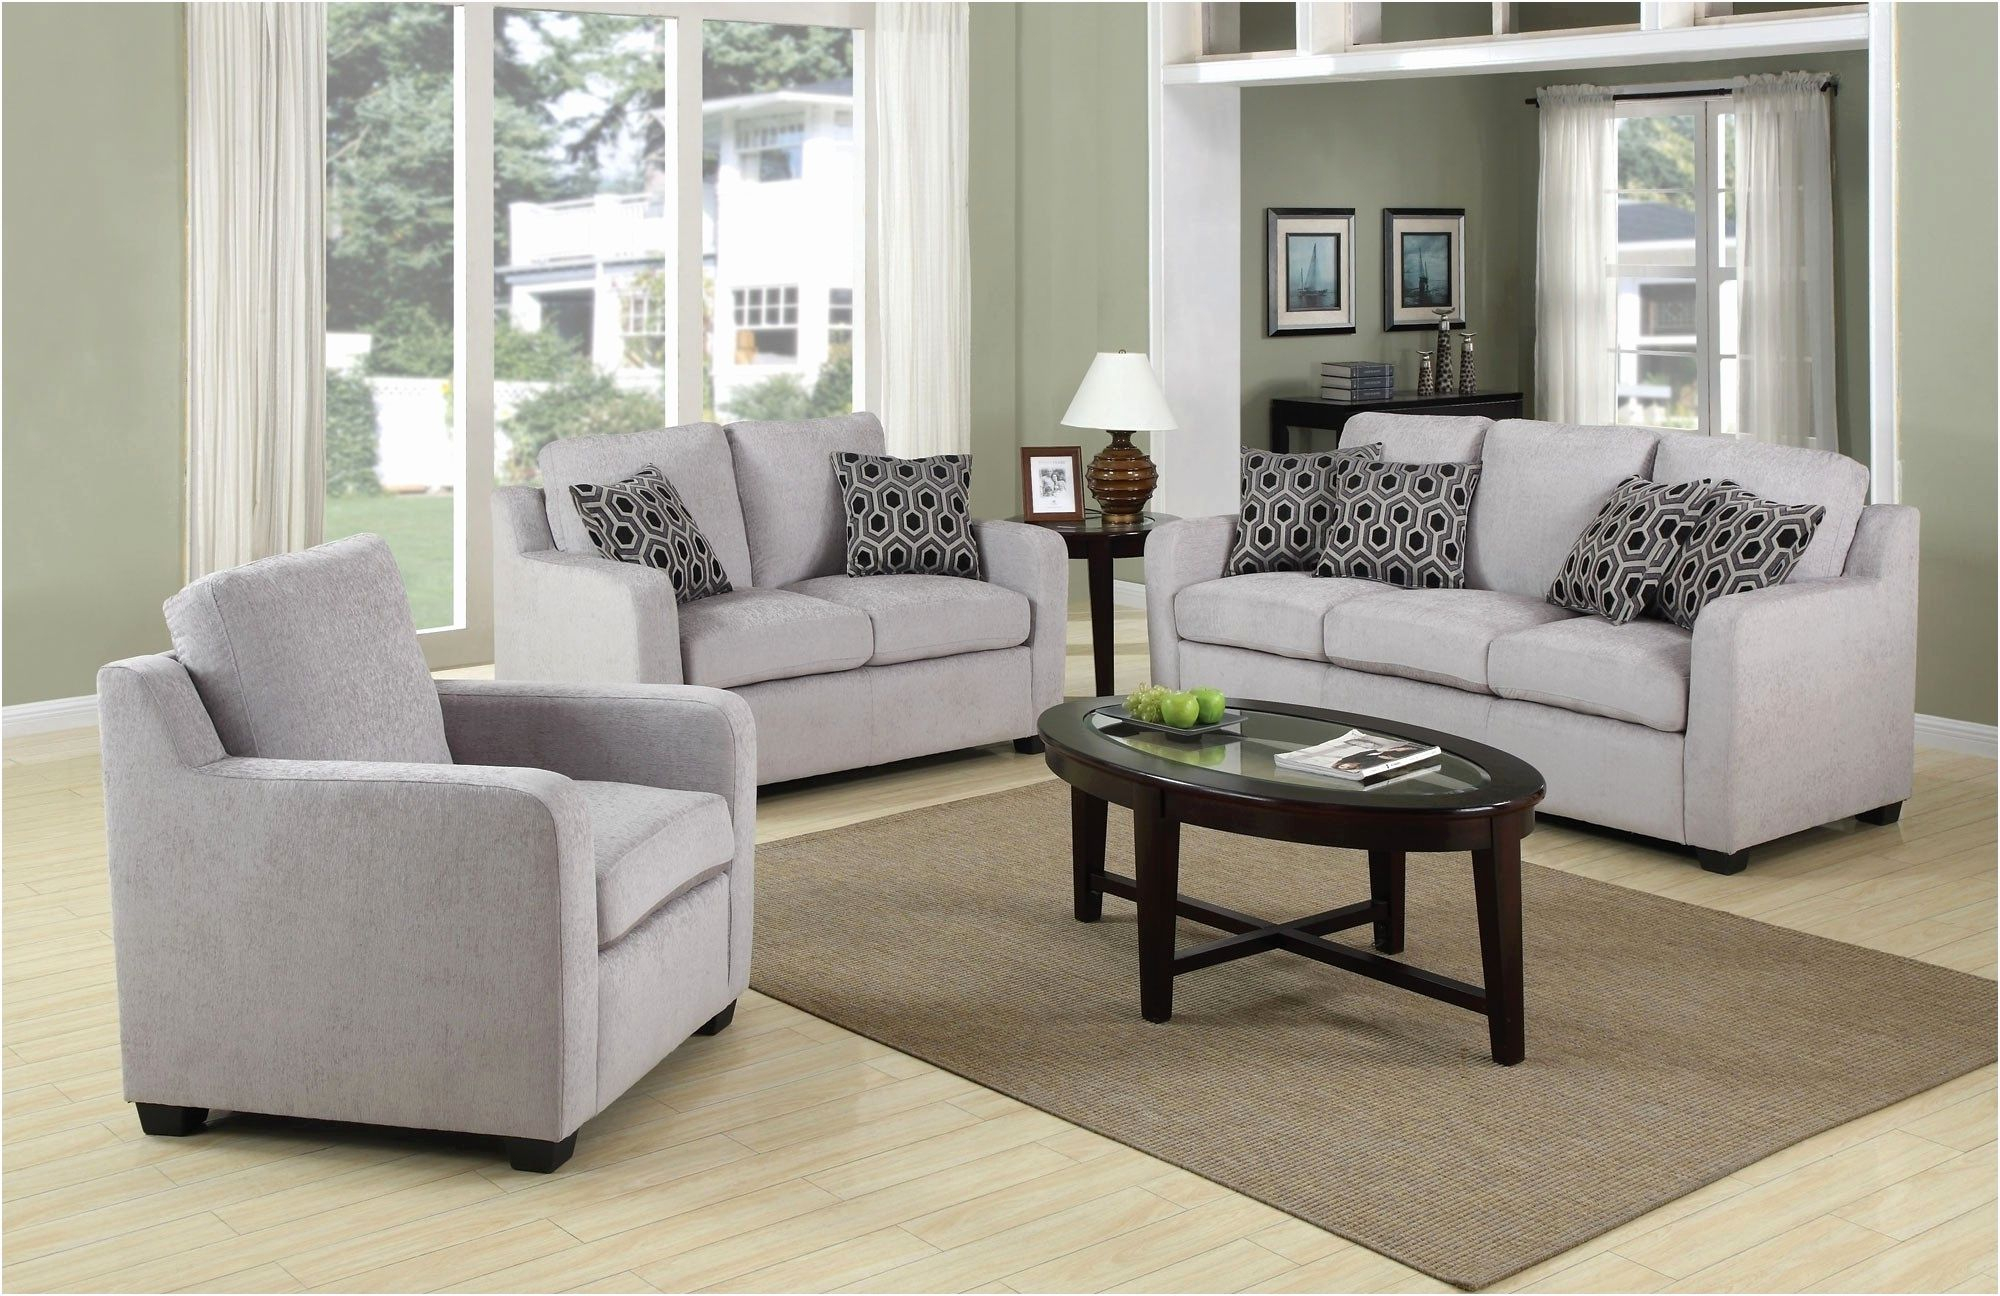 Good Sofa And Loveseat Sets Under 500 Picture Sofa And within 10 Awesome Designs of How to Makeover Living Room Sets Under 500